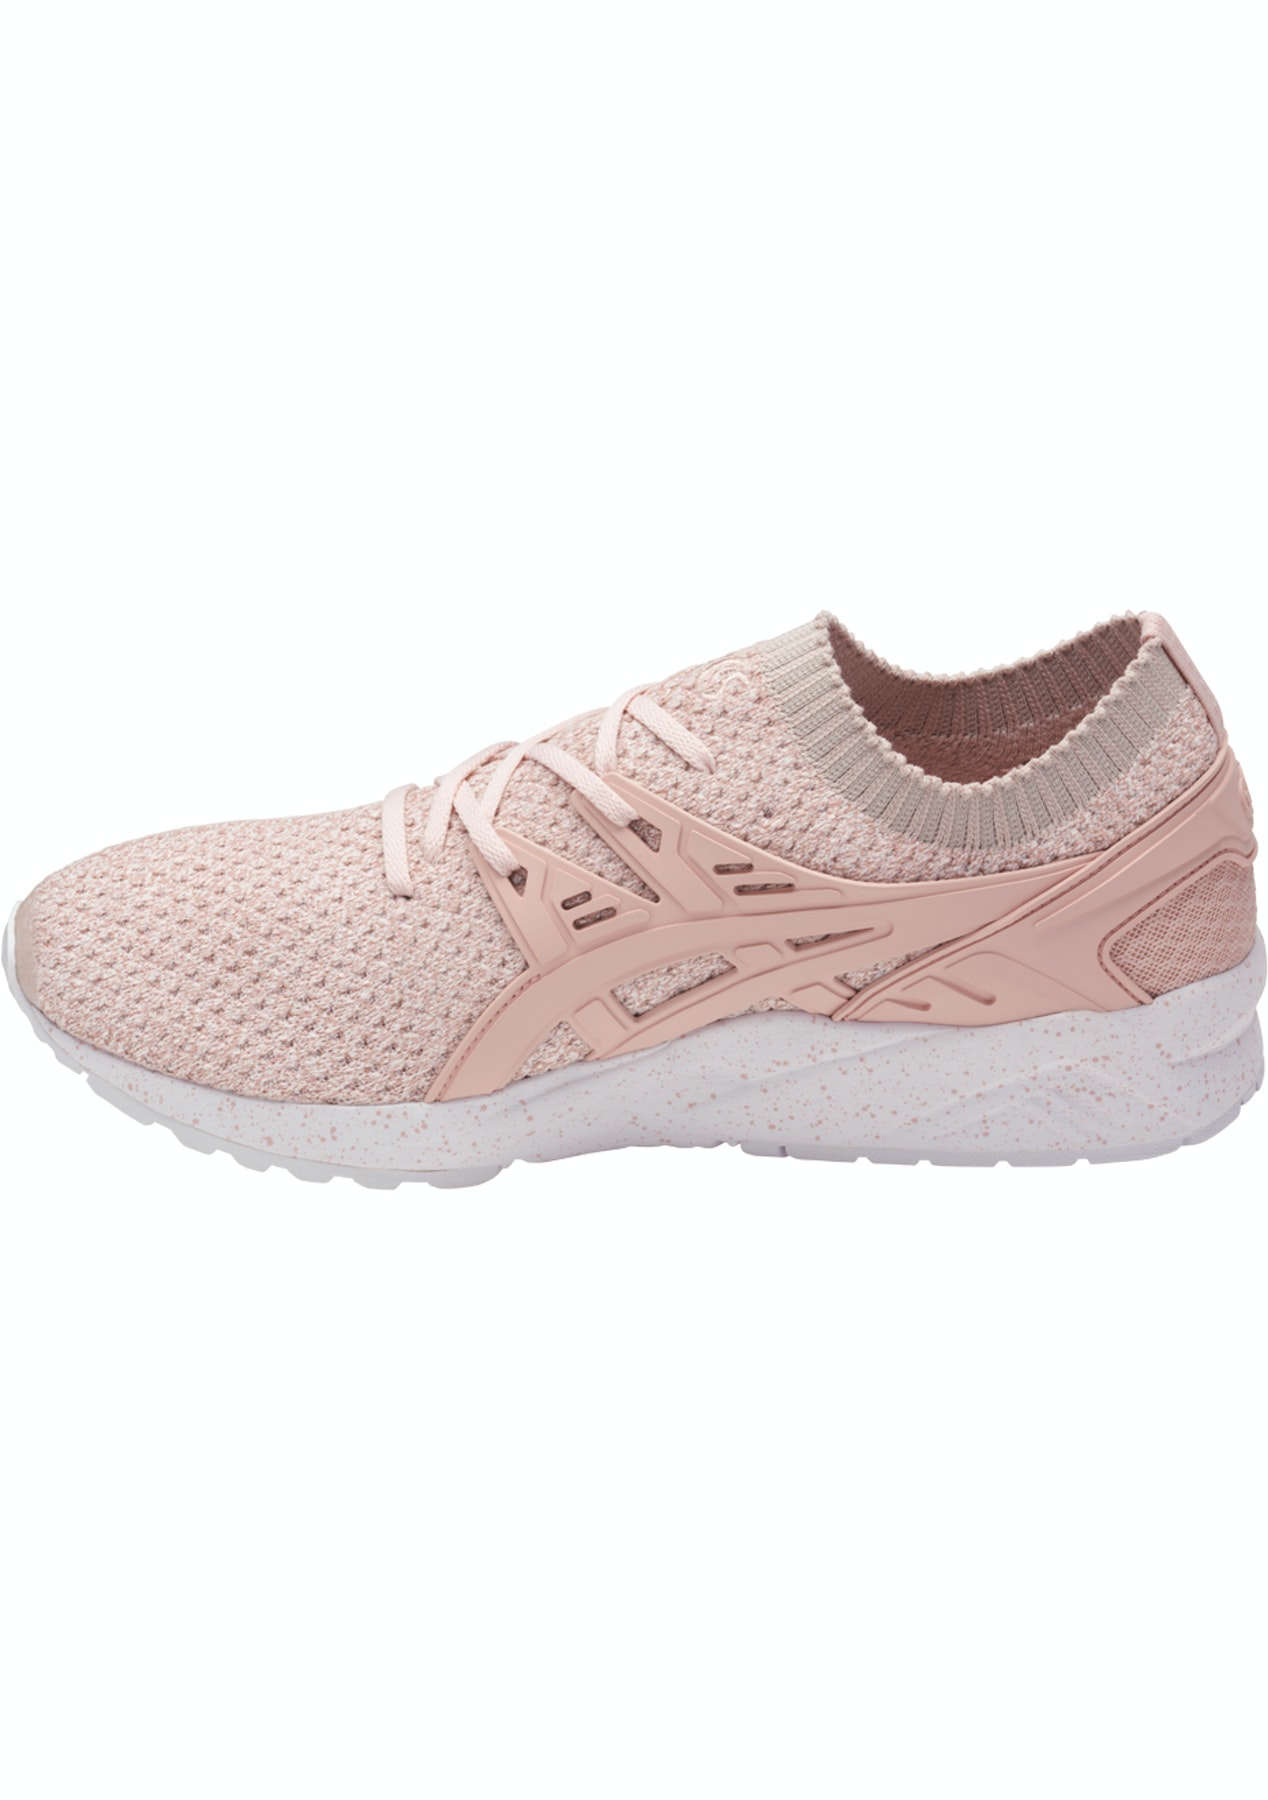 bf5581955a8f Asics Tiger - Gel-Kayano Trainer Knit - Unisex - Evening Sand Evening Sand  - Once a Year  20 Sale - Onceit